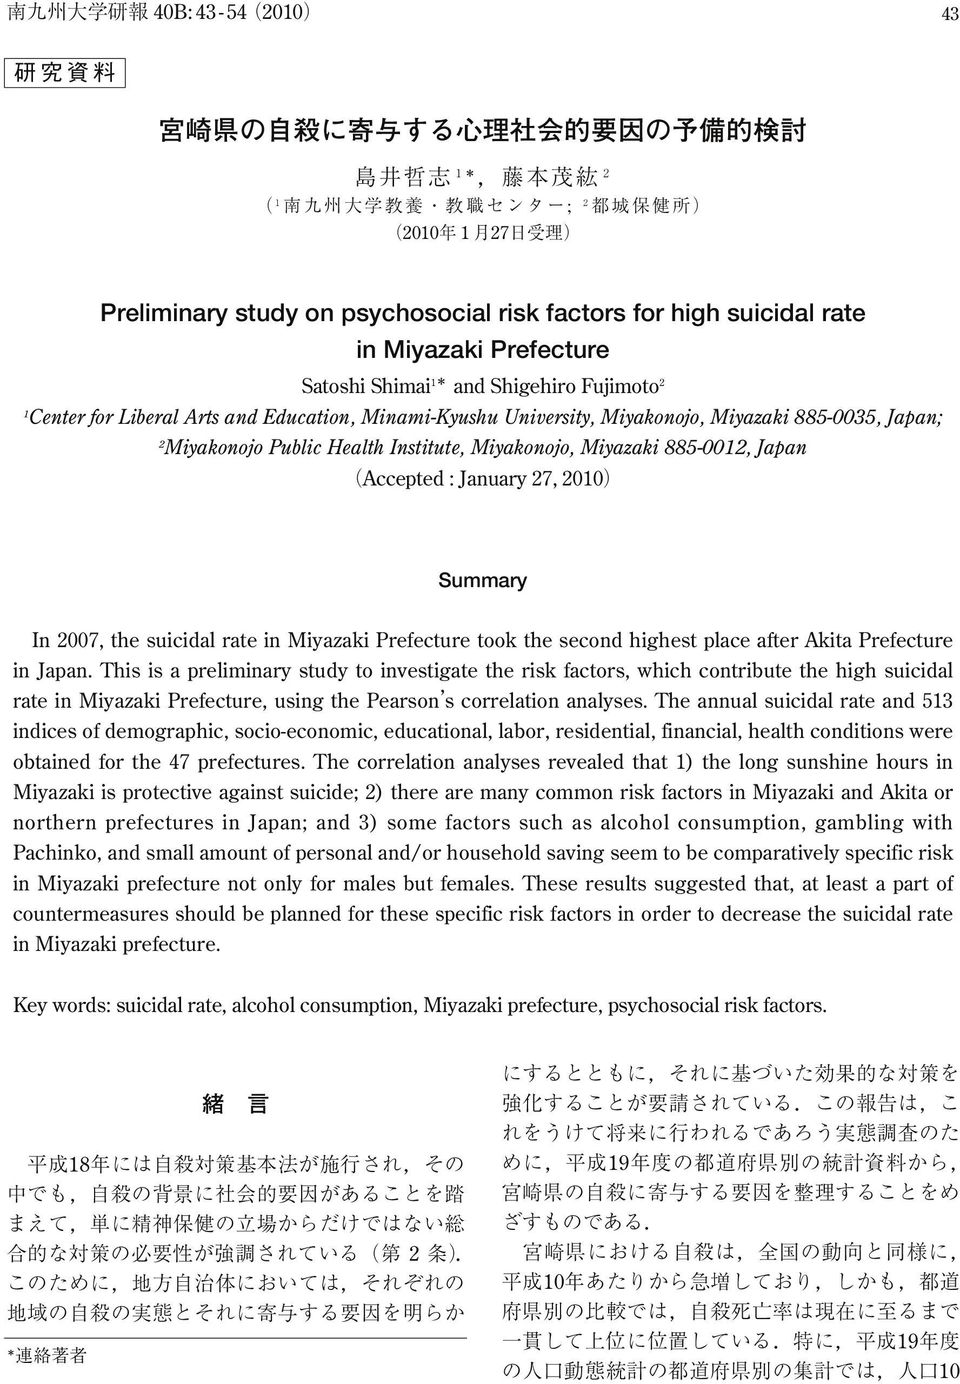 This is a preliminary study to investigate the risk factors, which contribute the high suicidal rate in Miyazaki Prefecture, using the Pearson, s correlation analyses.